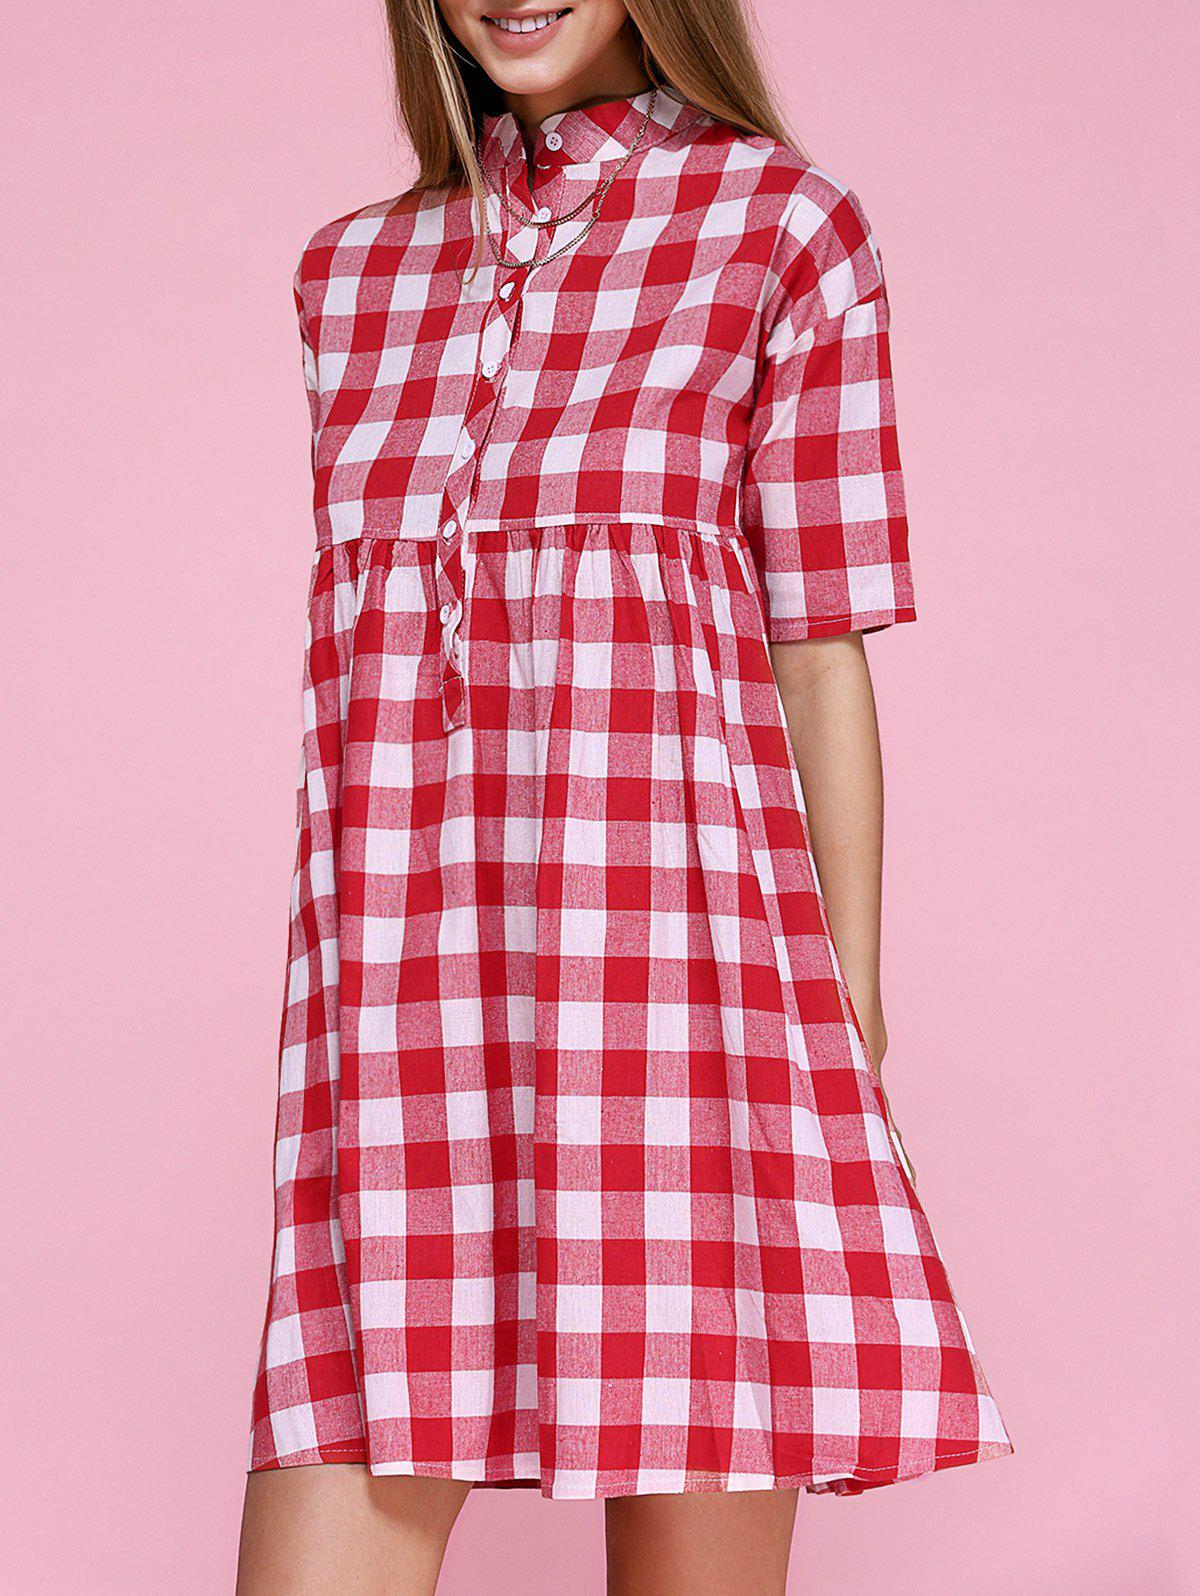 Ladylike Plaid Pattern Doll Dress